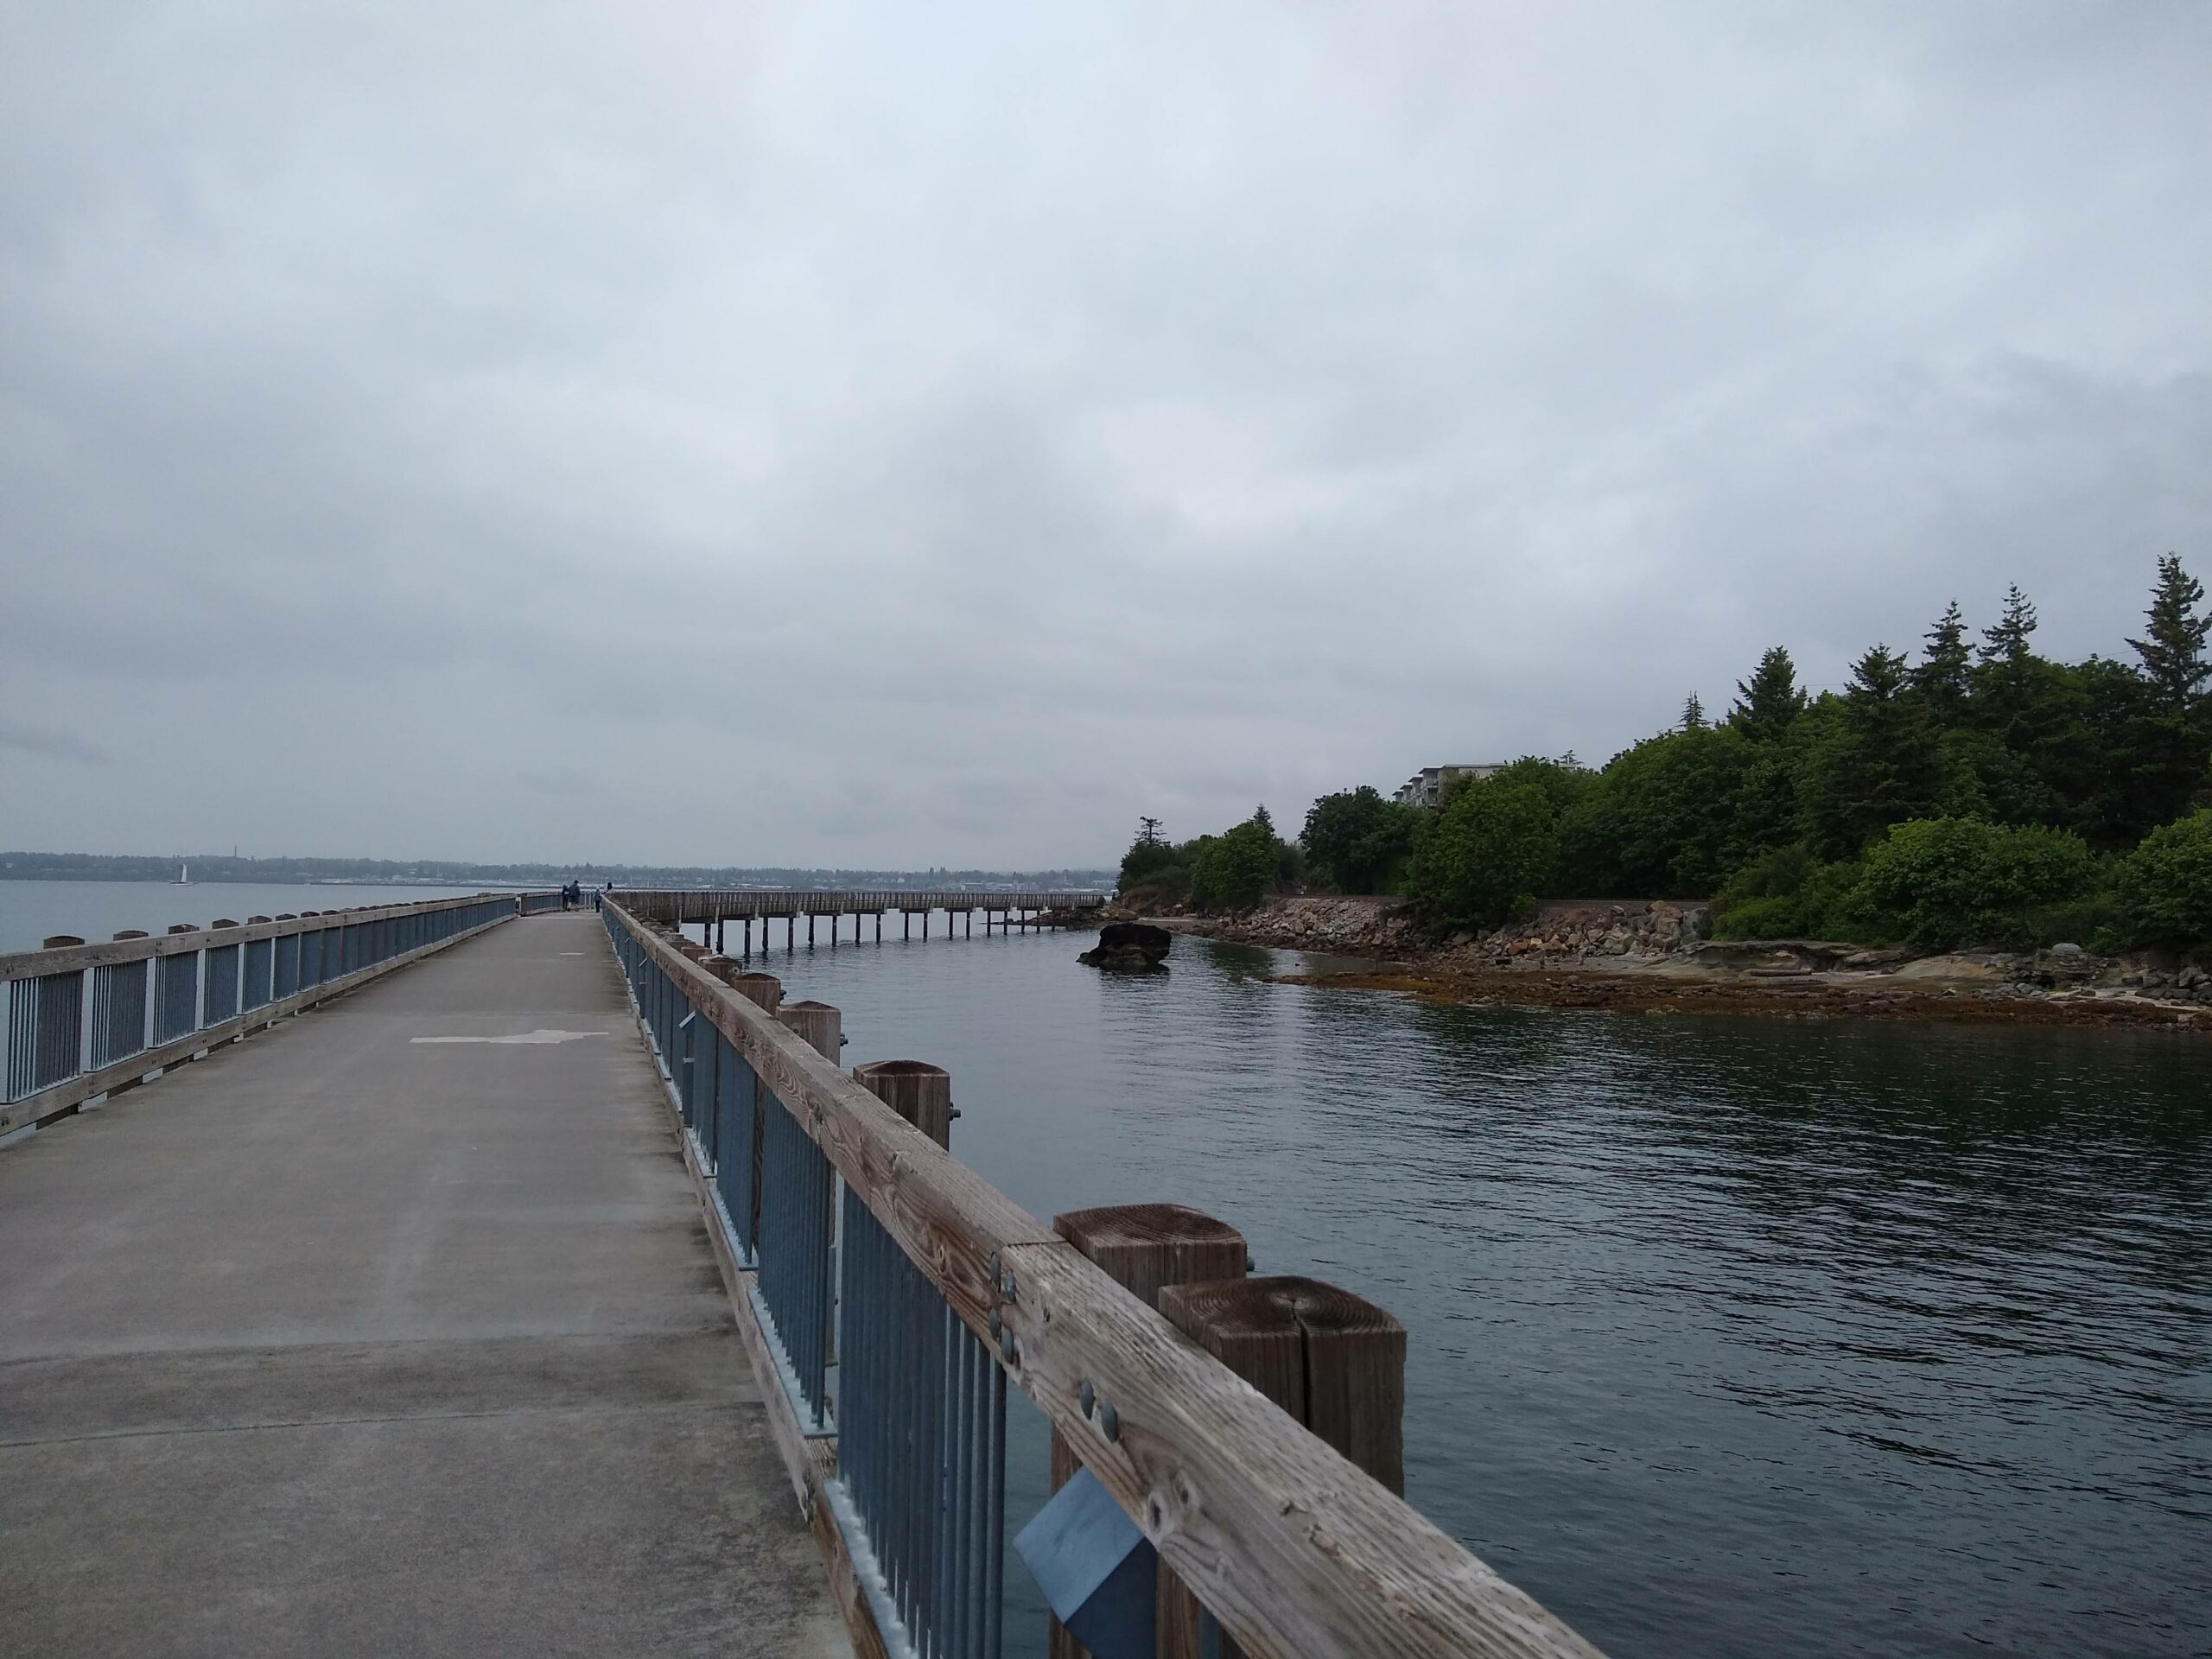 A boardwalk over the water next to a  forested shoreline on an overcast day